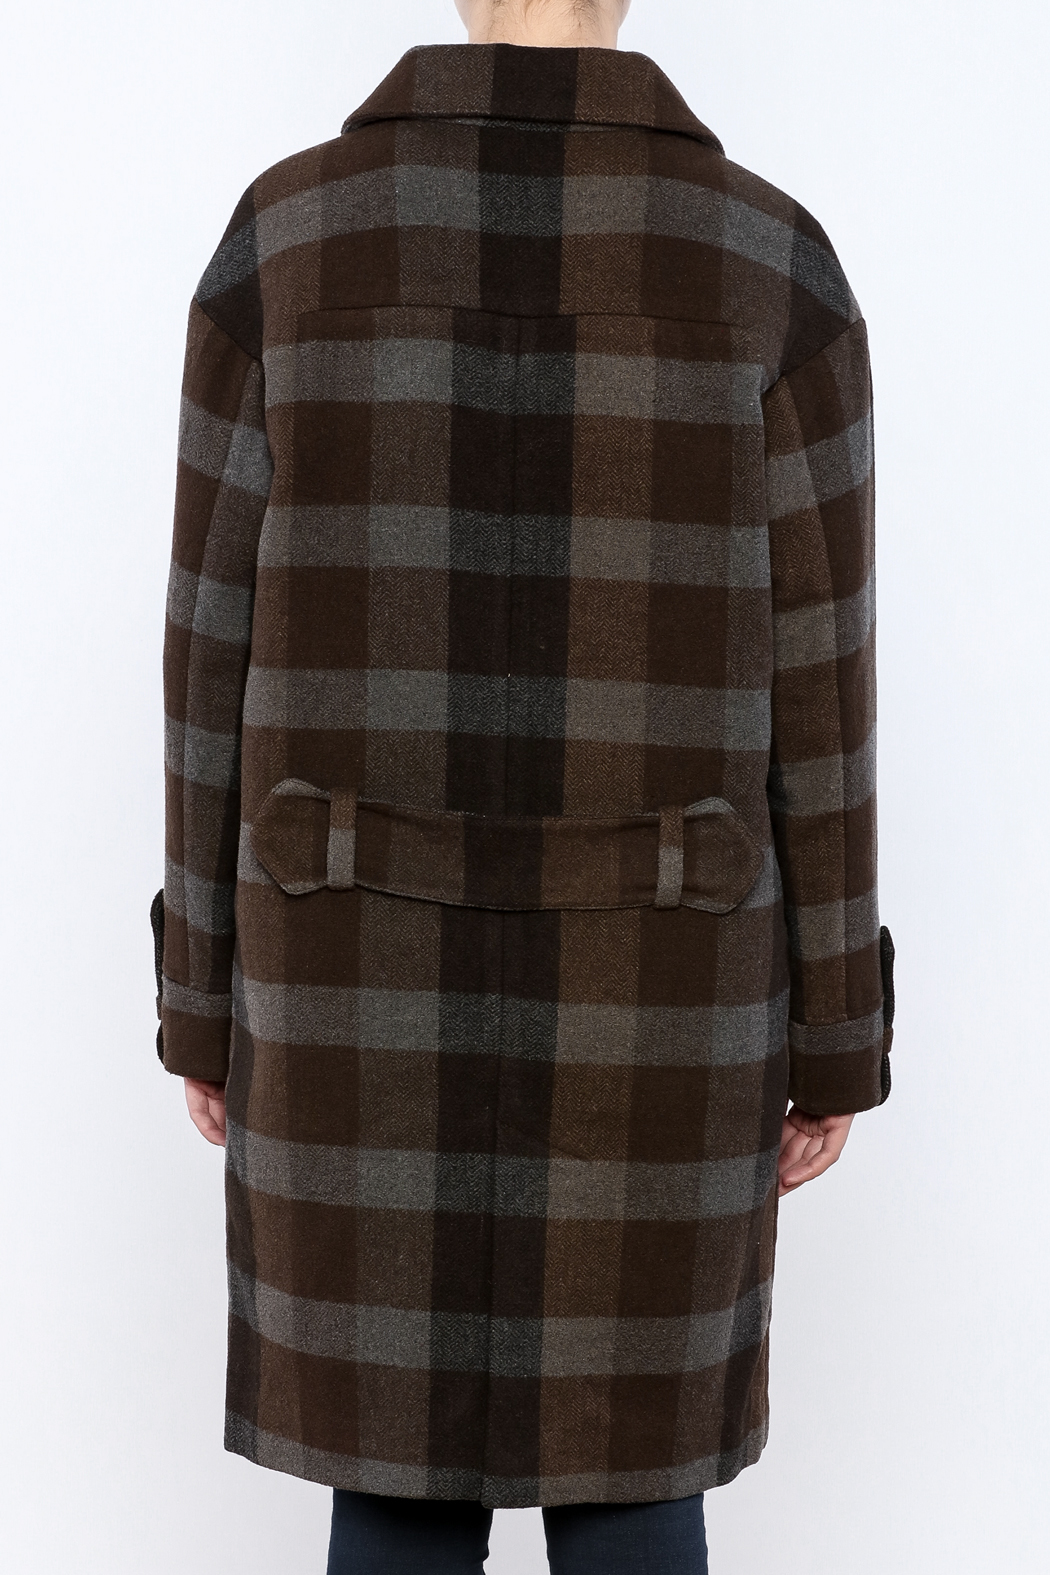 Hoss Intropia Checked Plaid Coat - Back Cropped Image